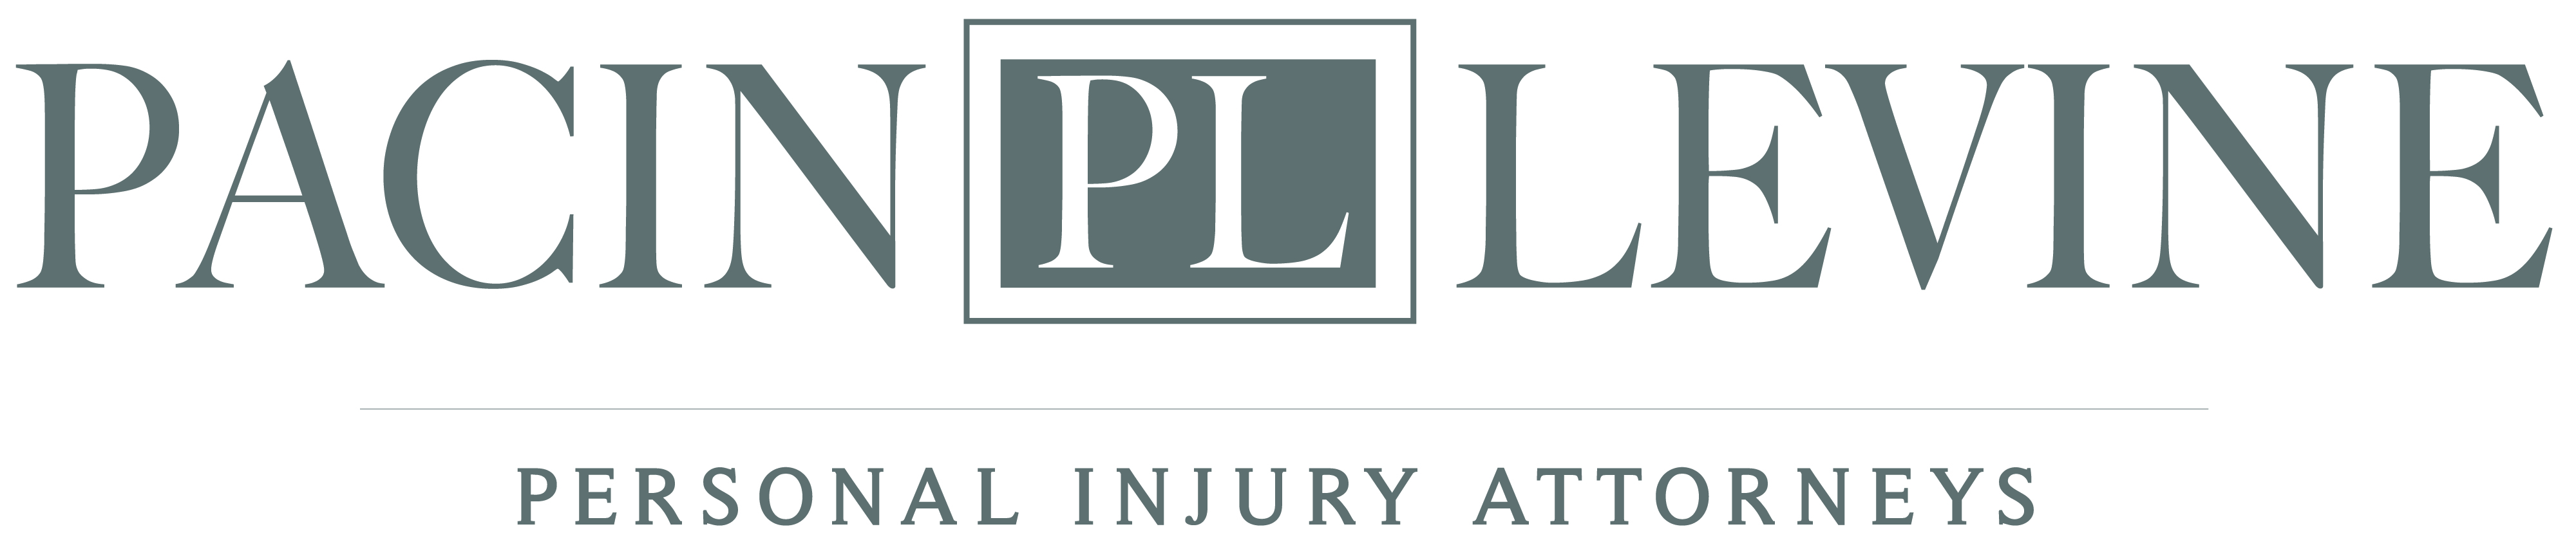 Pacin PL Levine Personal Injury Attorneys, a Doral Chamber of Commerce member.